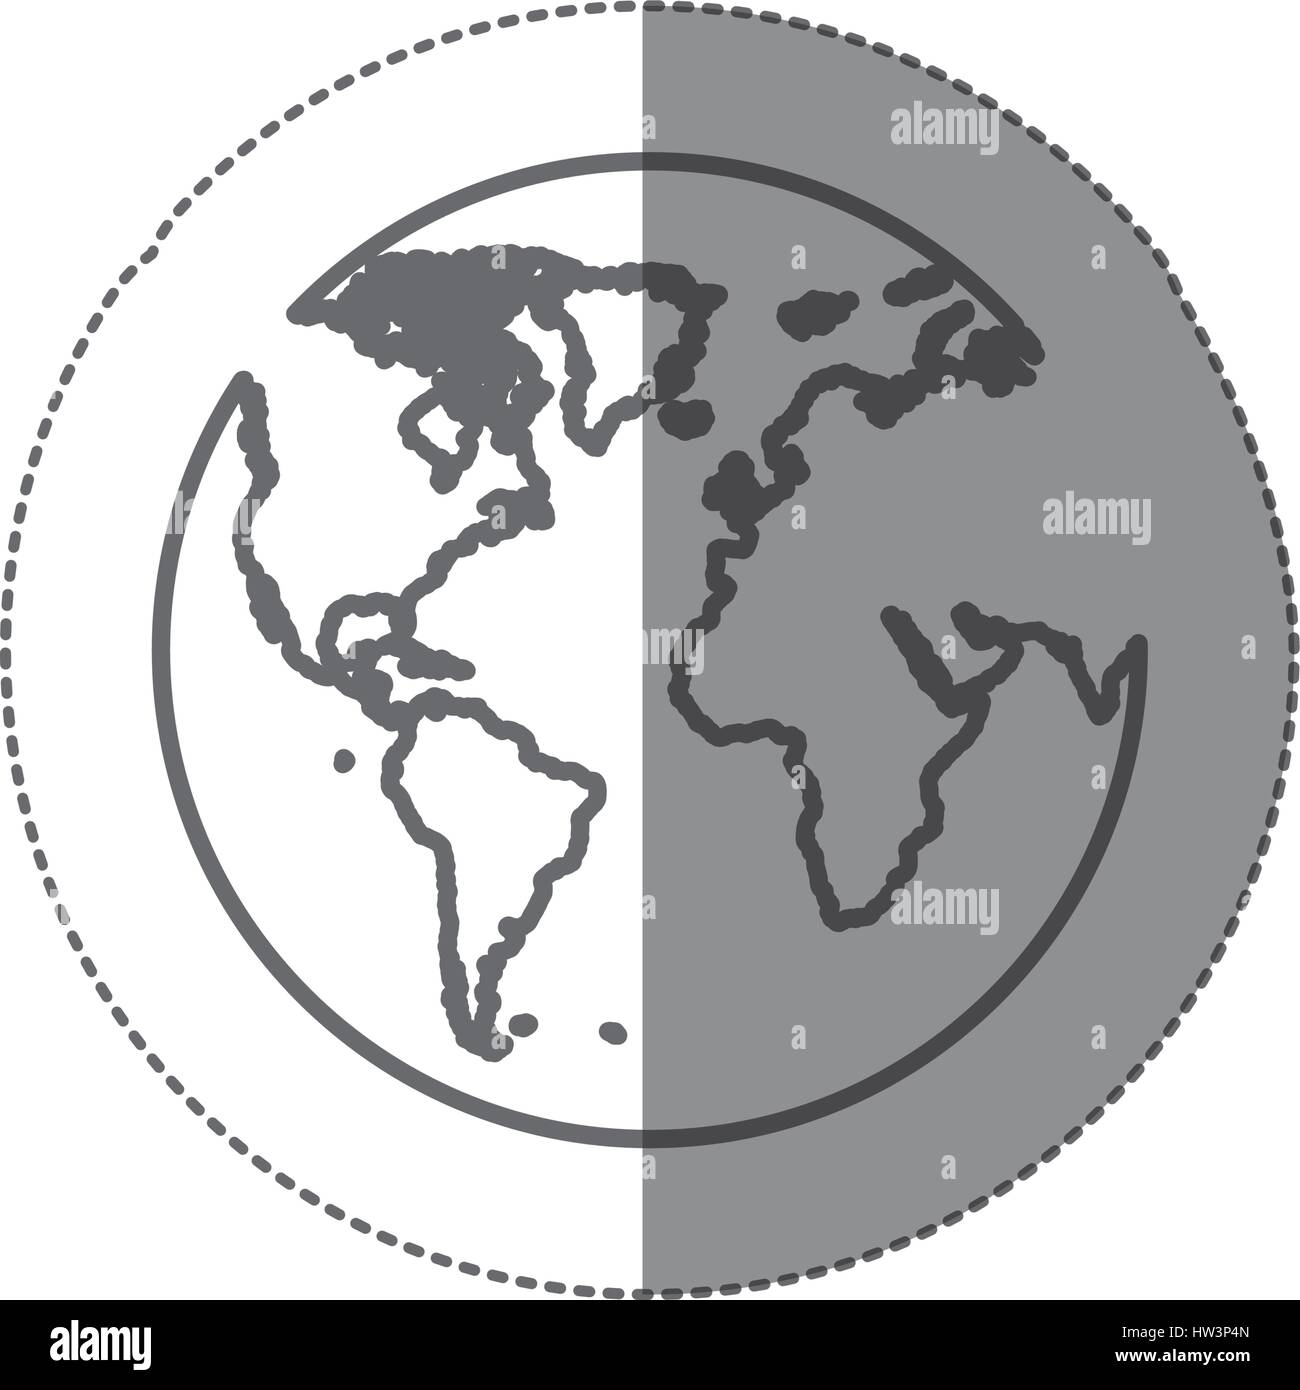 sticker silhouette map of the world icon flat - Stock Vector